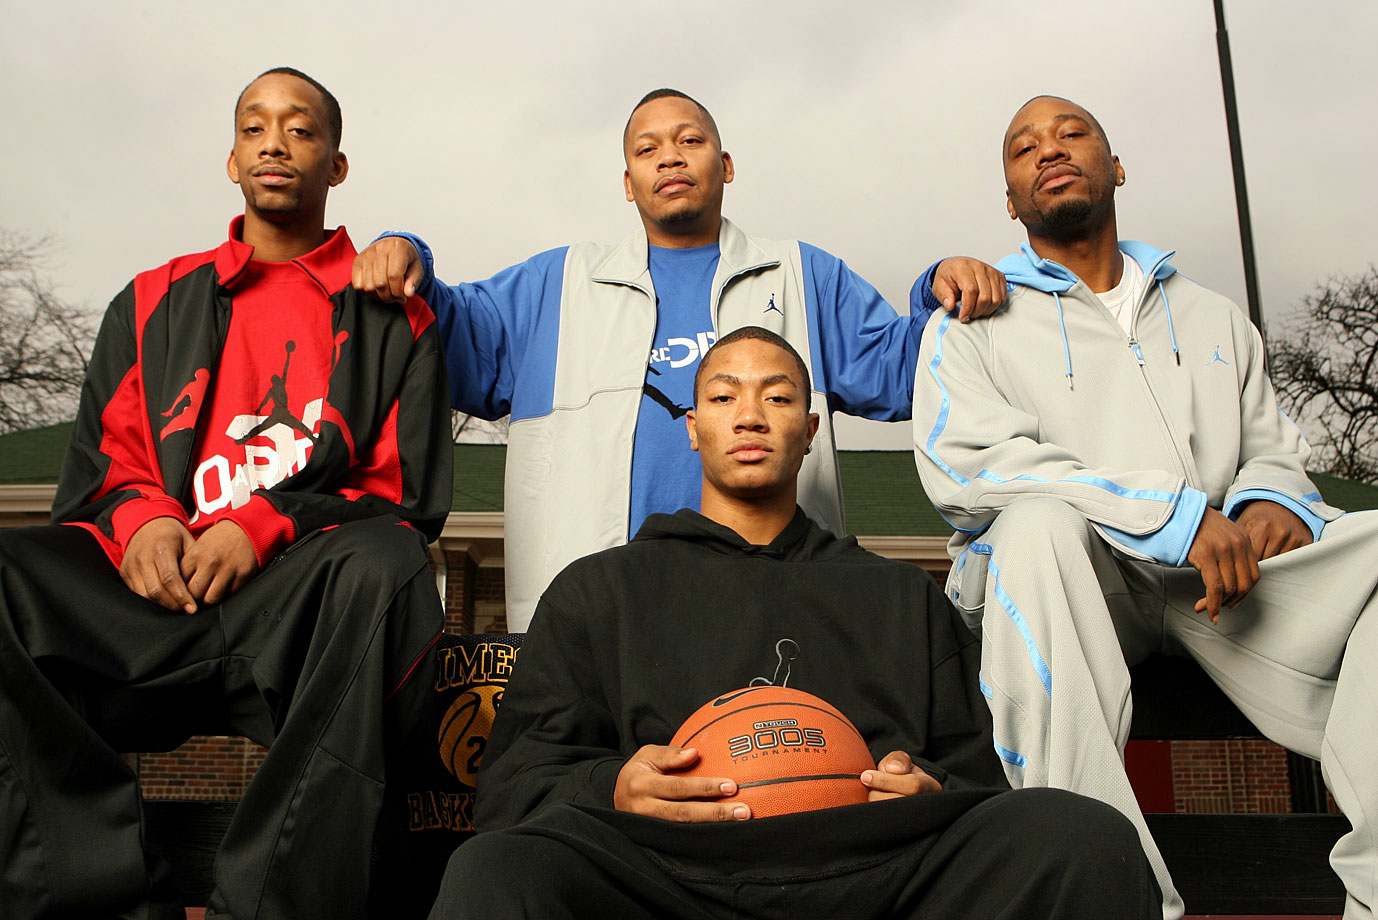 Derrick Rose learned how to play from his older brothers Dwayne, Reggie and Allan.